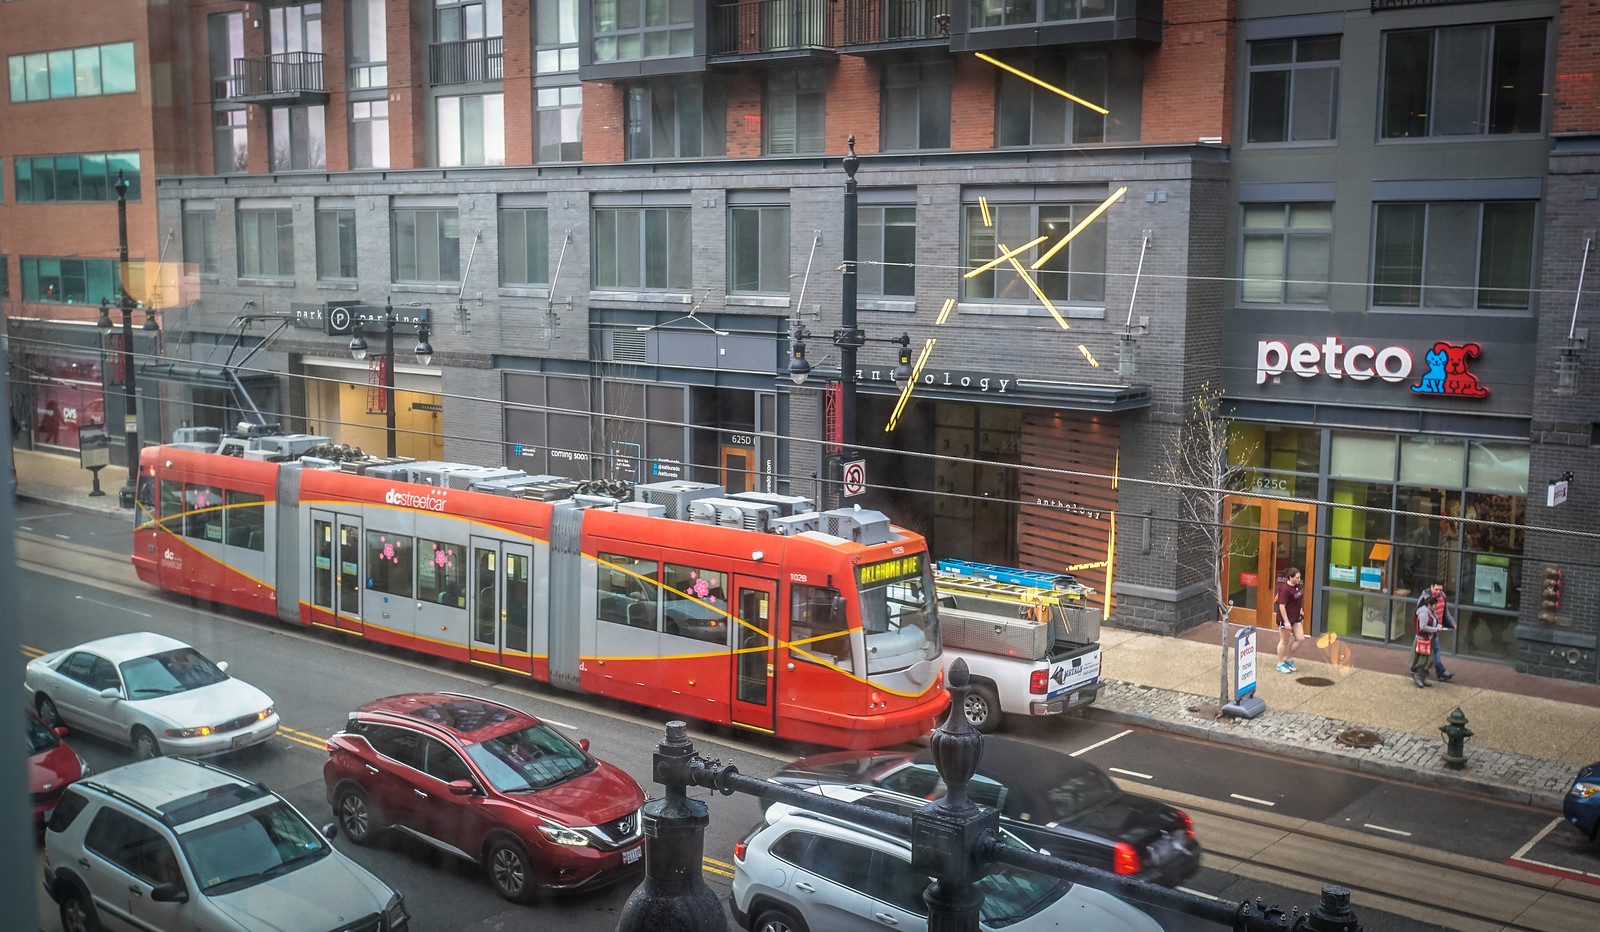 Thanks for publishing my photo of the @DCStreetcar, @ggwash in a chance to shape the future of transportation in our region